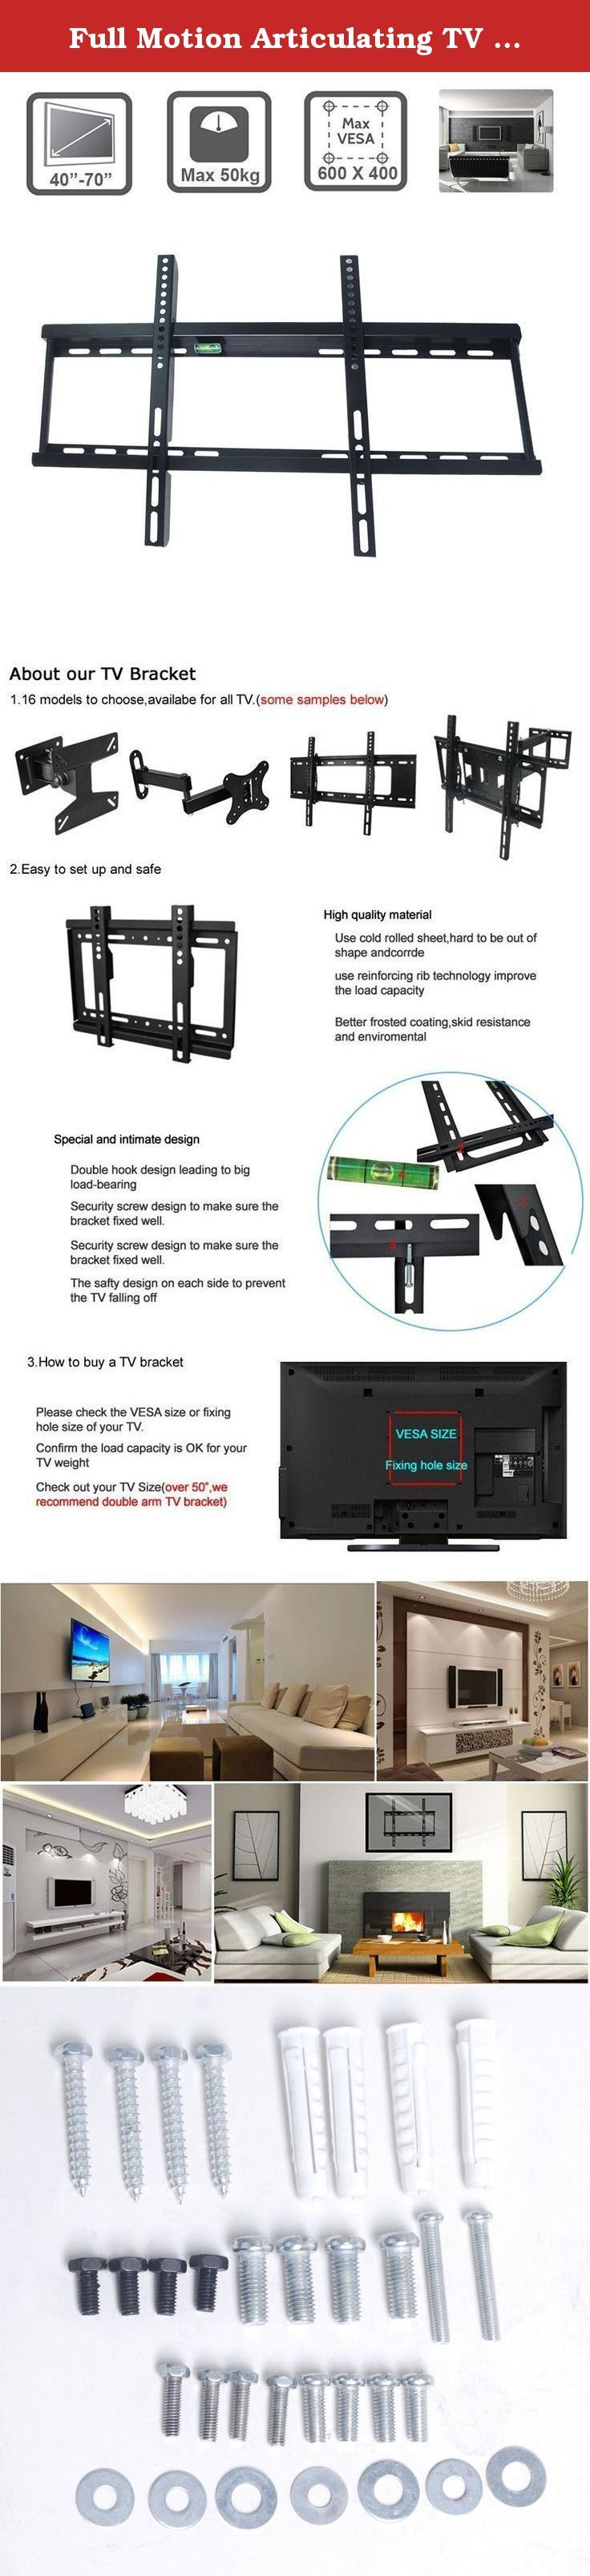 "Full Motion Articulating TV Wall Mount Bracket for most 40-70 inch LED, LCD, OLED and Plasma Flat Screen TVs w/ VESA patterns up to 600 x 400mm. Item Description: This Retractable Bracket fits 40"" - 70"" 3D, LED, LCD, Plasma TVs. Features: 1. Brand new,high quality. 2. Flexible TV Wall Mount Bracket design, ideal for your TV. 3. Be made from solid, sturdy steel,can support up to 50kg(110Ibs). 4. Material: SPCC with coating finished. 5. Supports VESA standards 600 mm x 400 mm,400 mm x 400…"